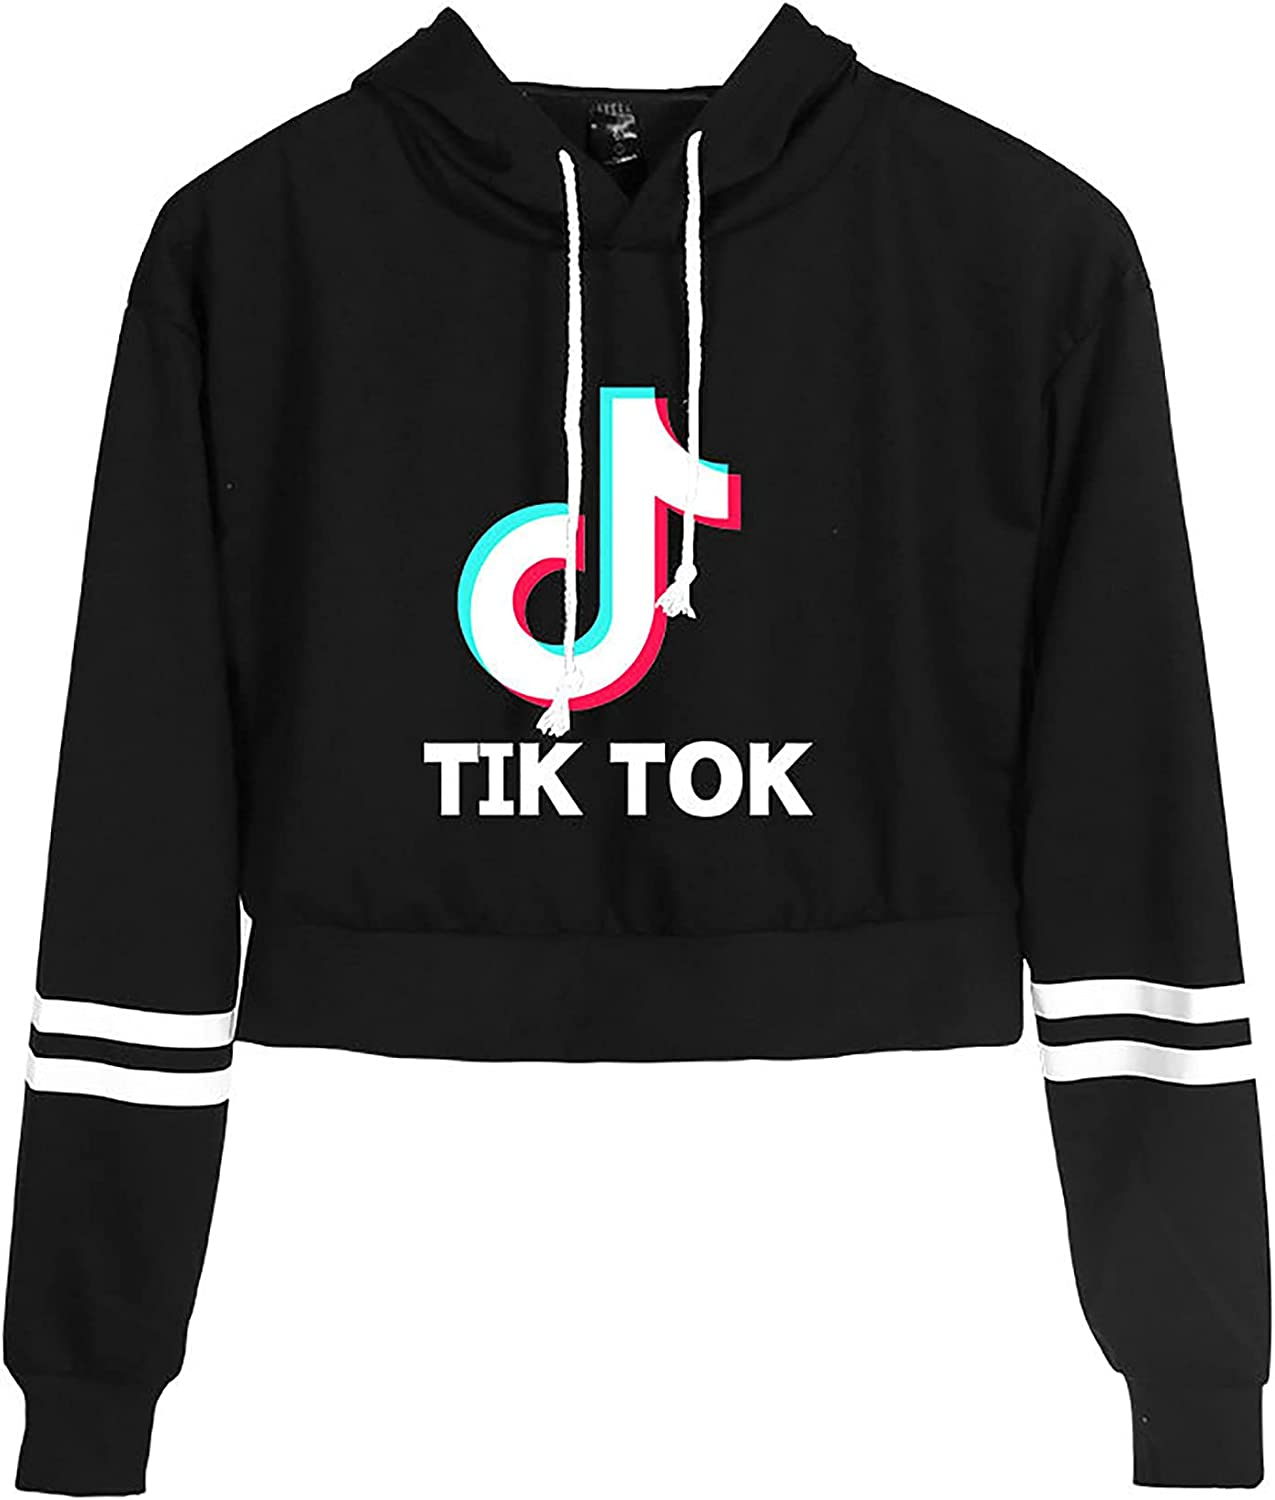 Women's To-TIK Hoodies Girl Pullover Sweatshirts Long Sleeve Cropped Hoodie Active Hooded Cropped Pullover